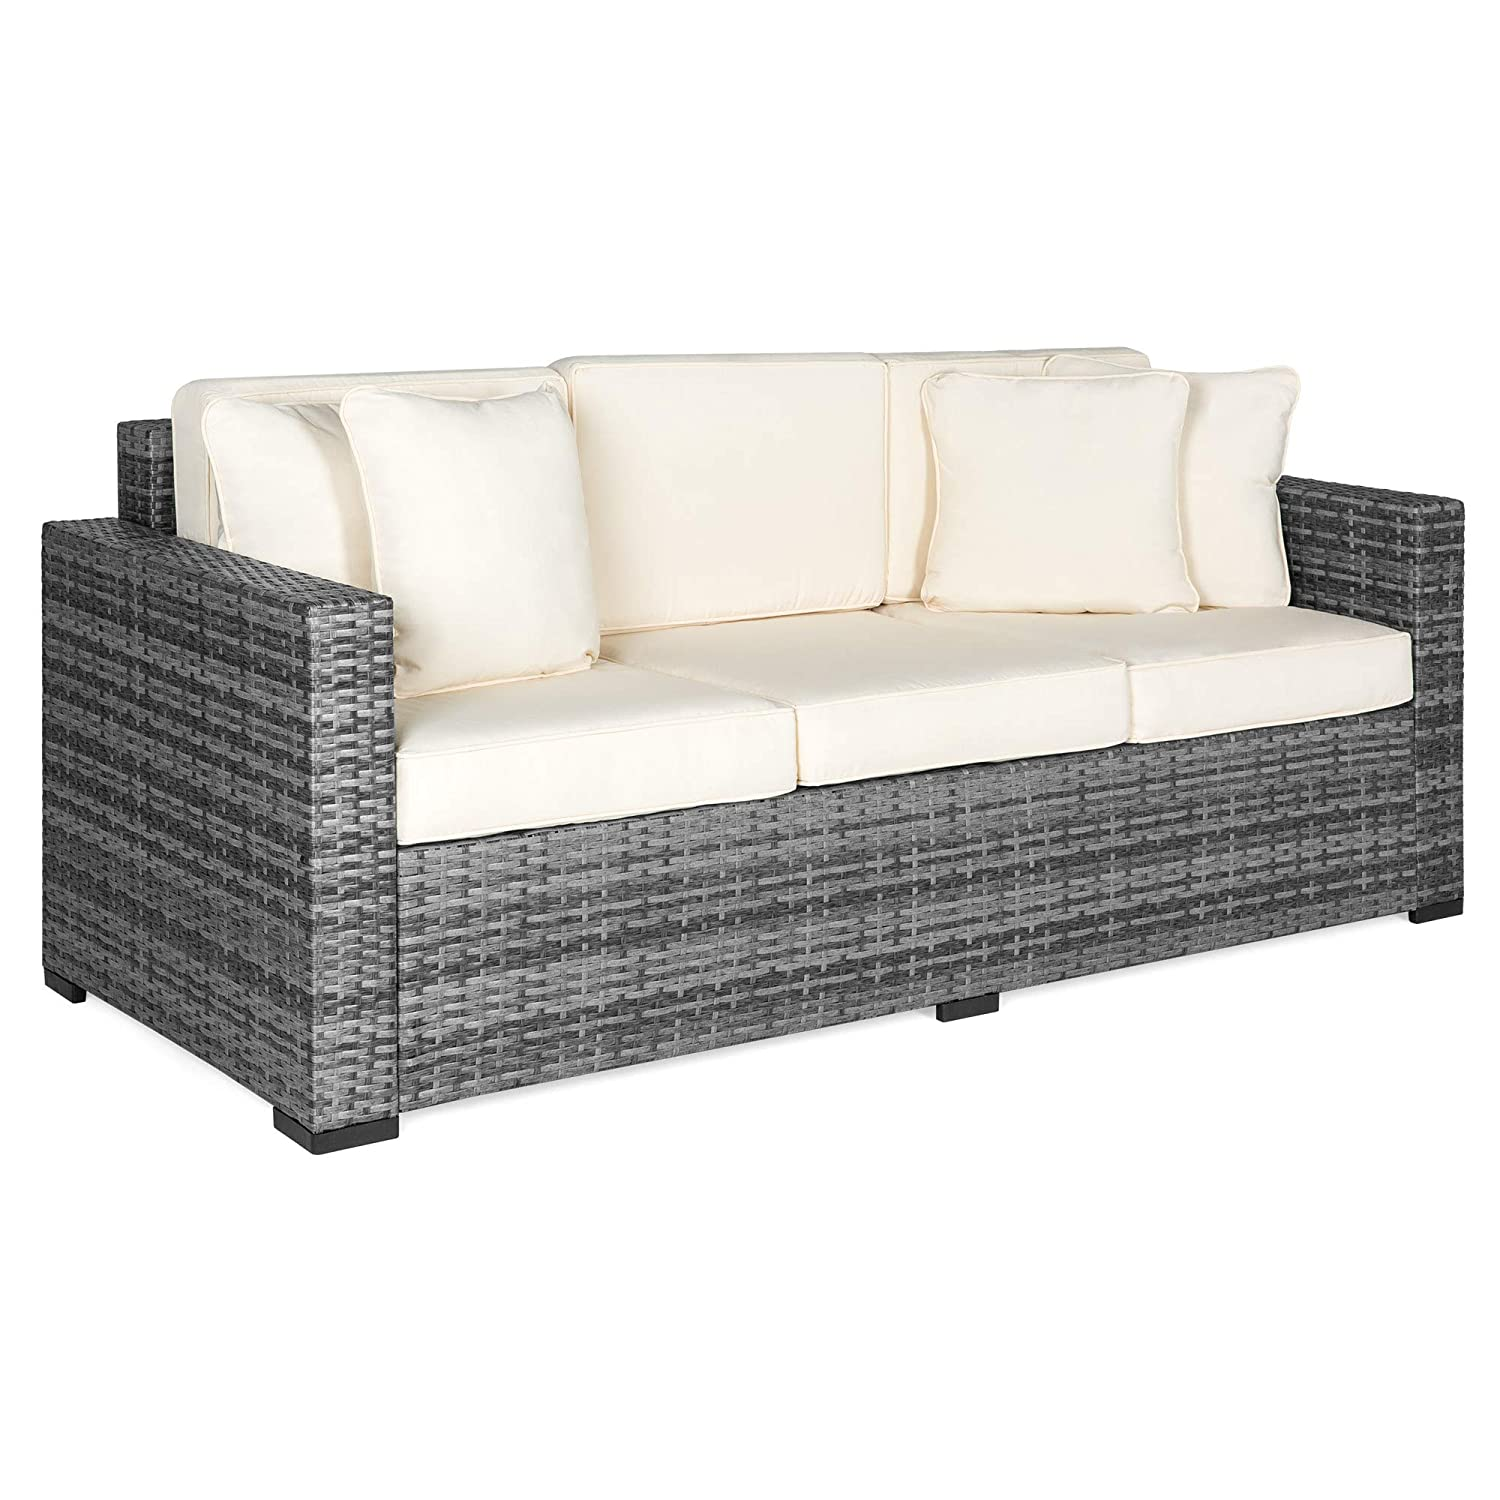 Best Choice Products 3-Seat Outdoor Wicker Sofa Couch Patio Furniture w/  Steel Frame, Removable Cushions - Gray